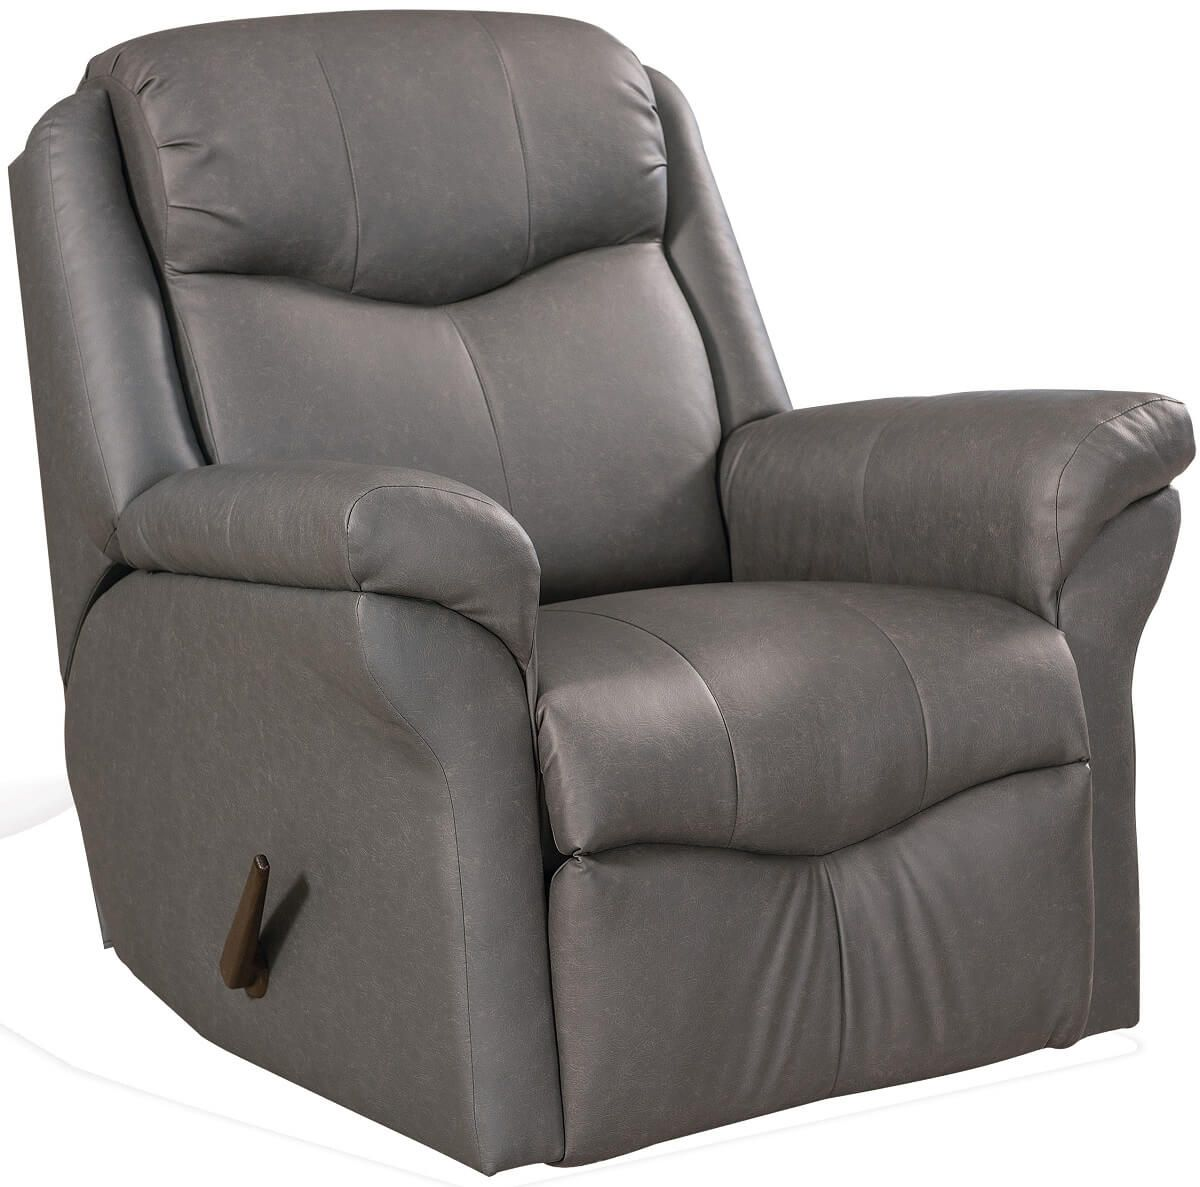 American Made Recliner